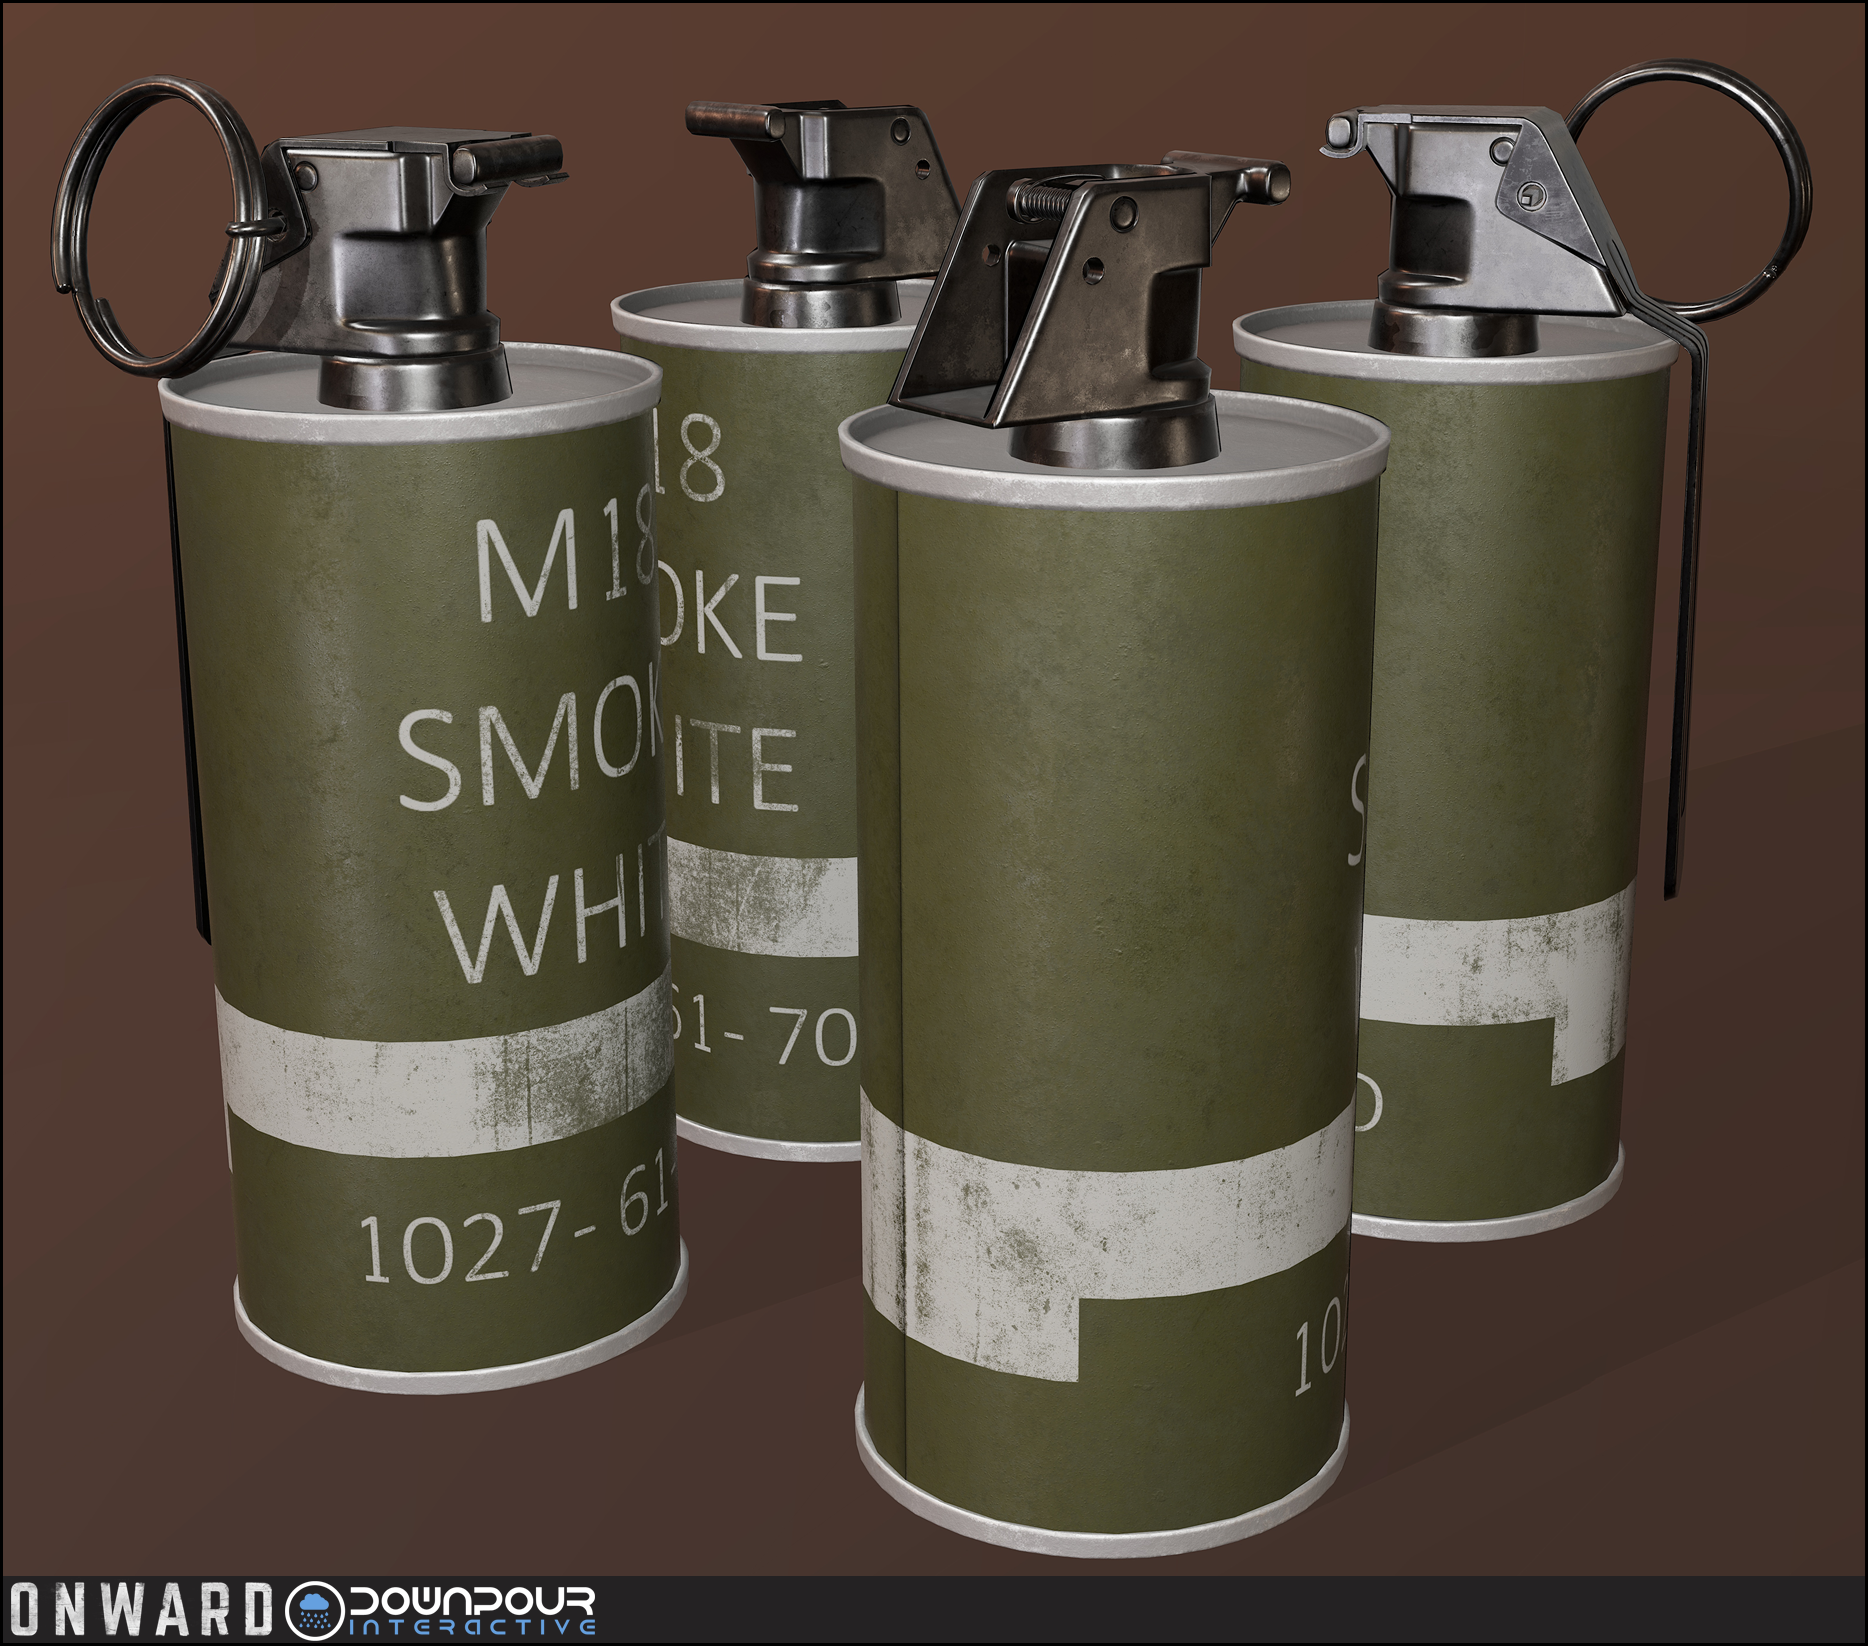 New replacement model for the smoke grenade.